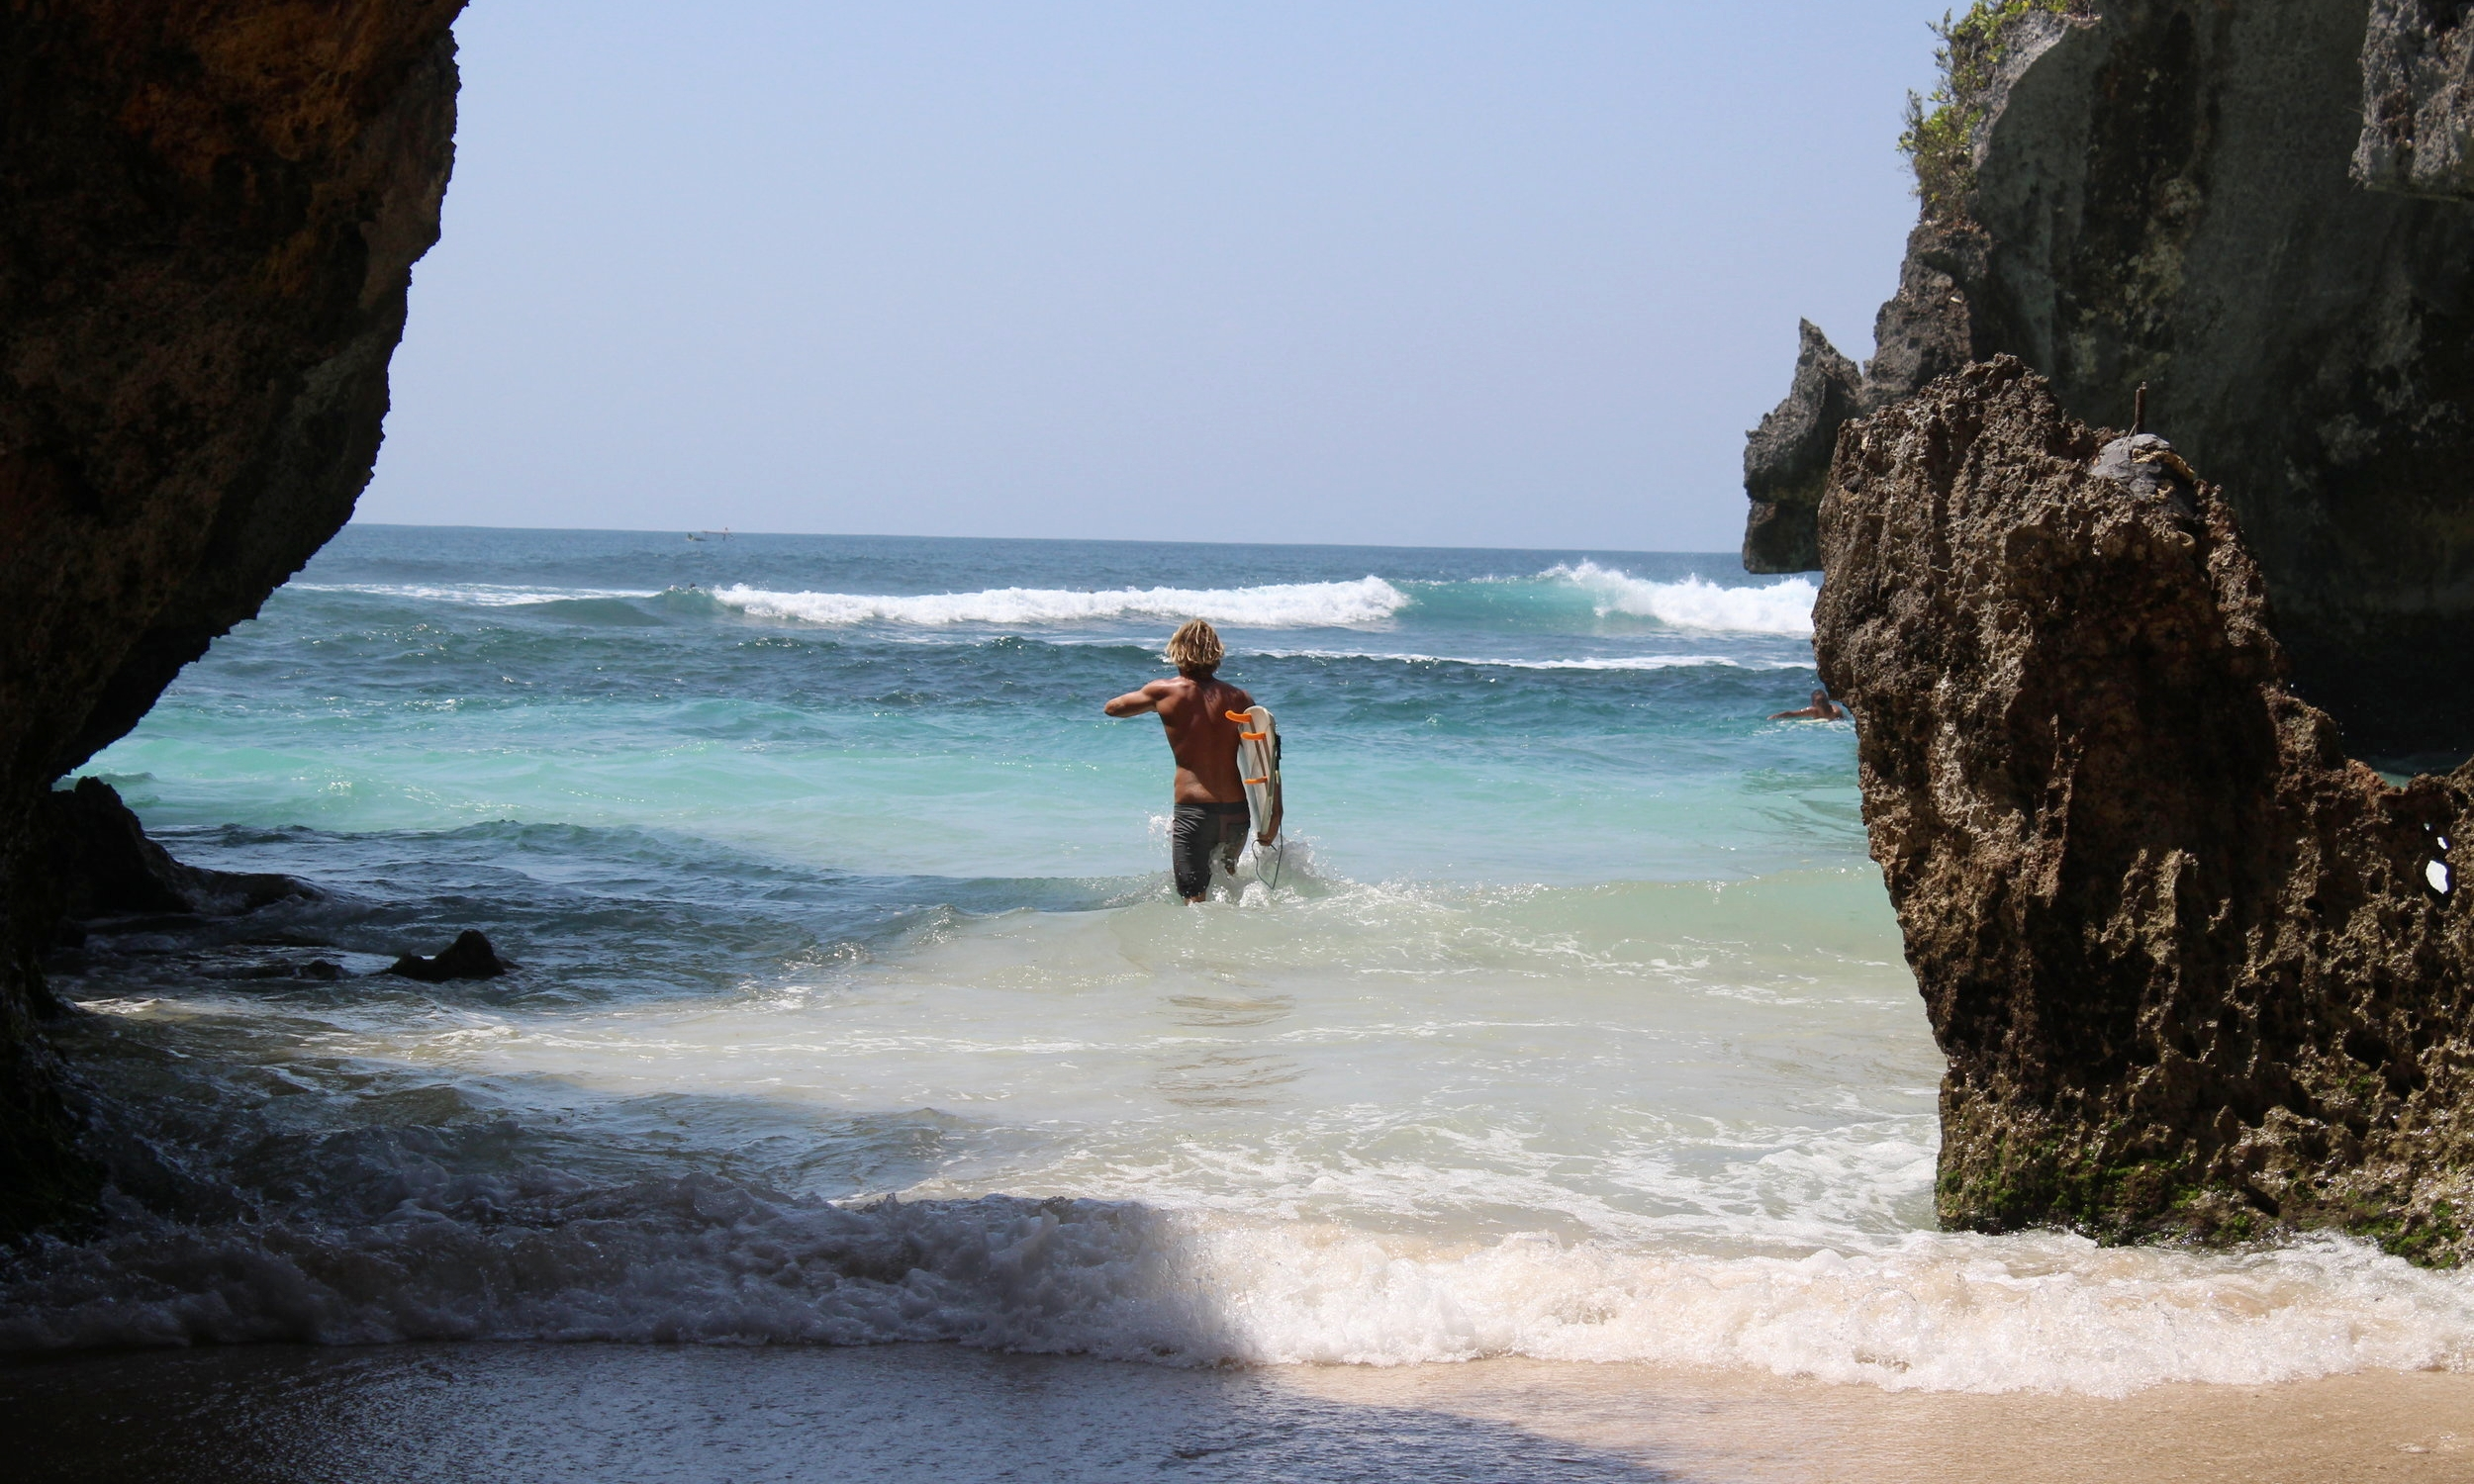 Surfer ready to hit the waves in Uluwatu, Bali. I can't wait to explore more of Southeast Asia.